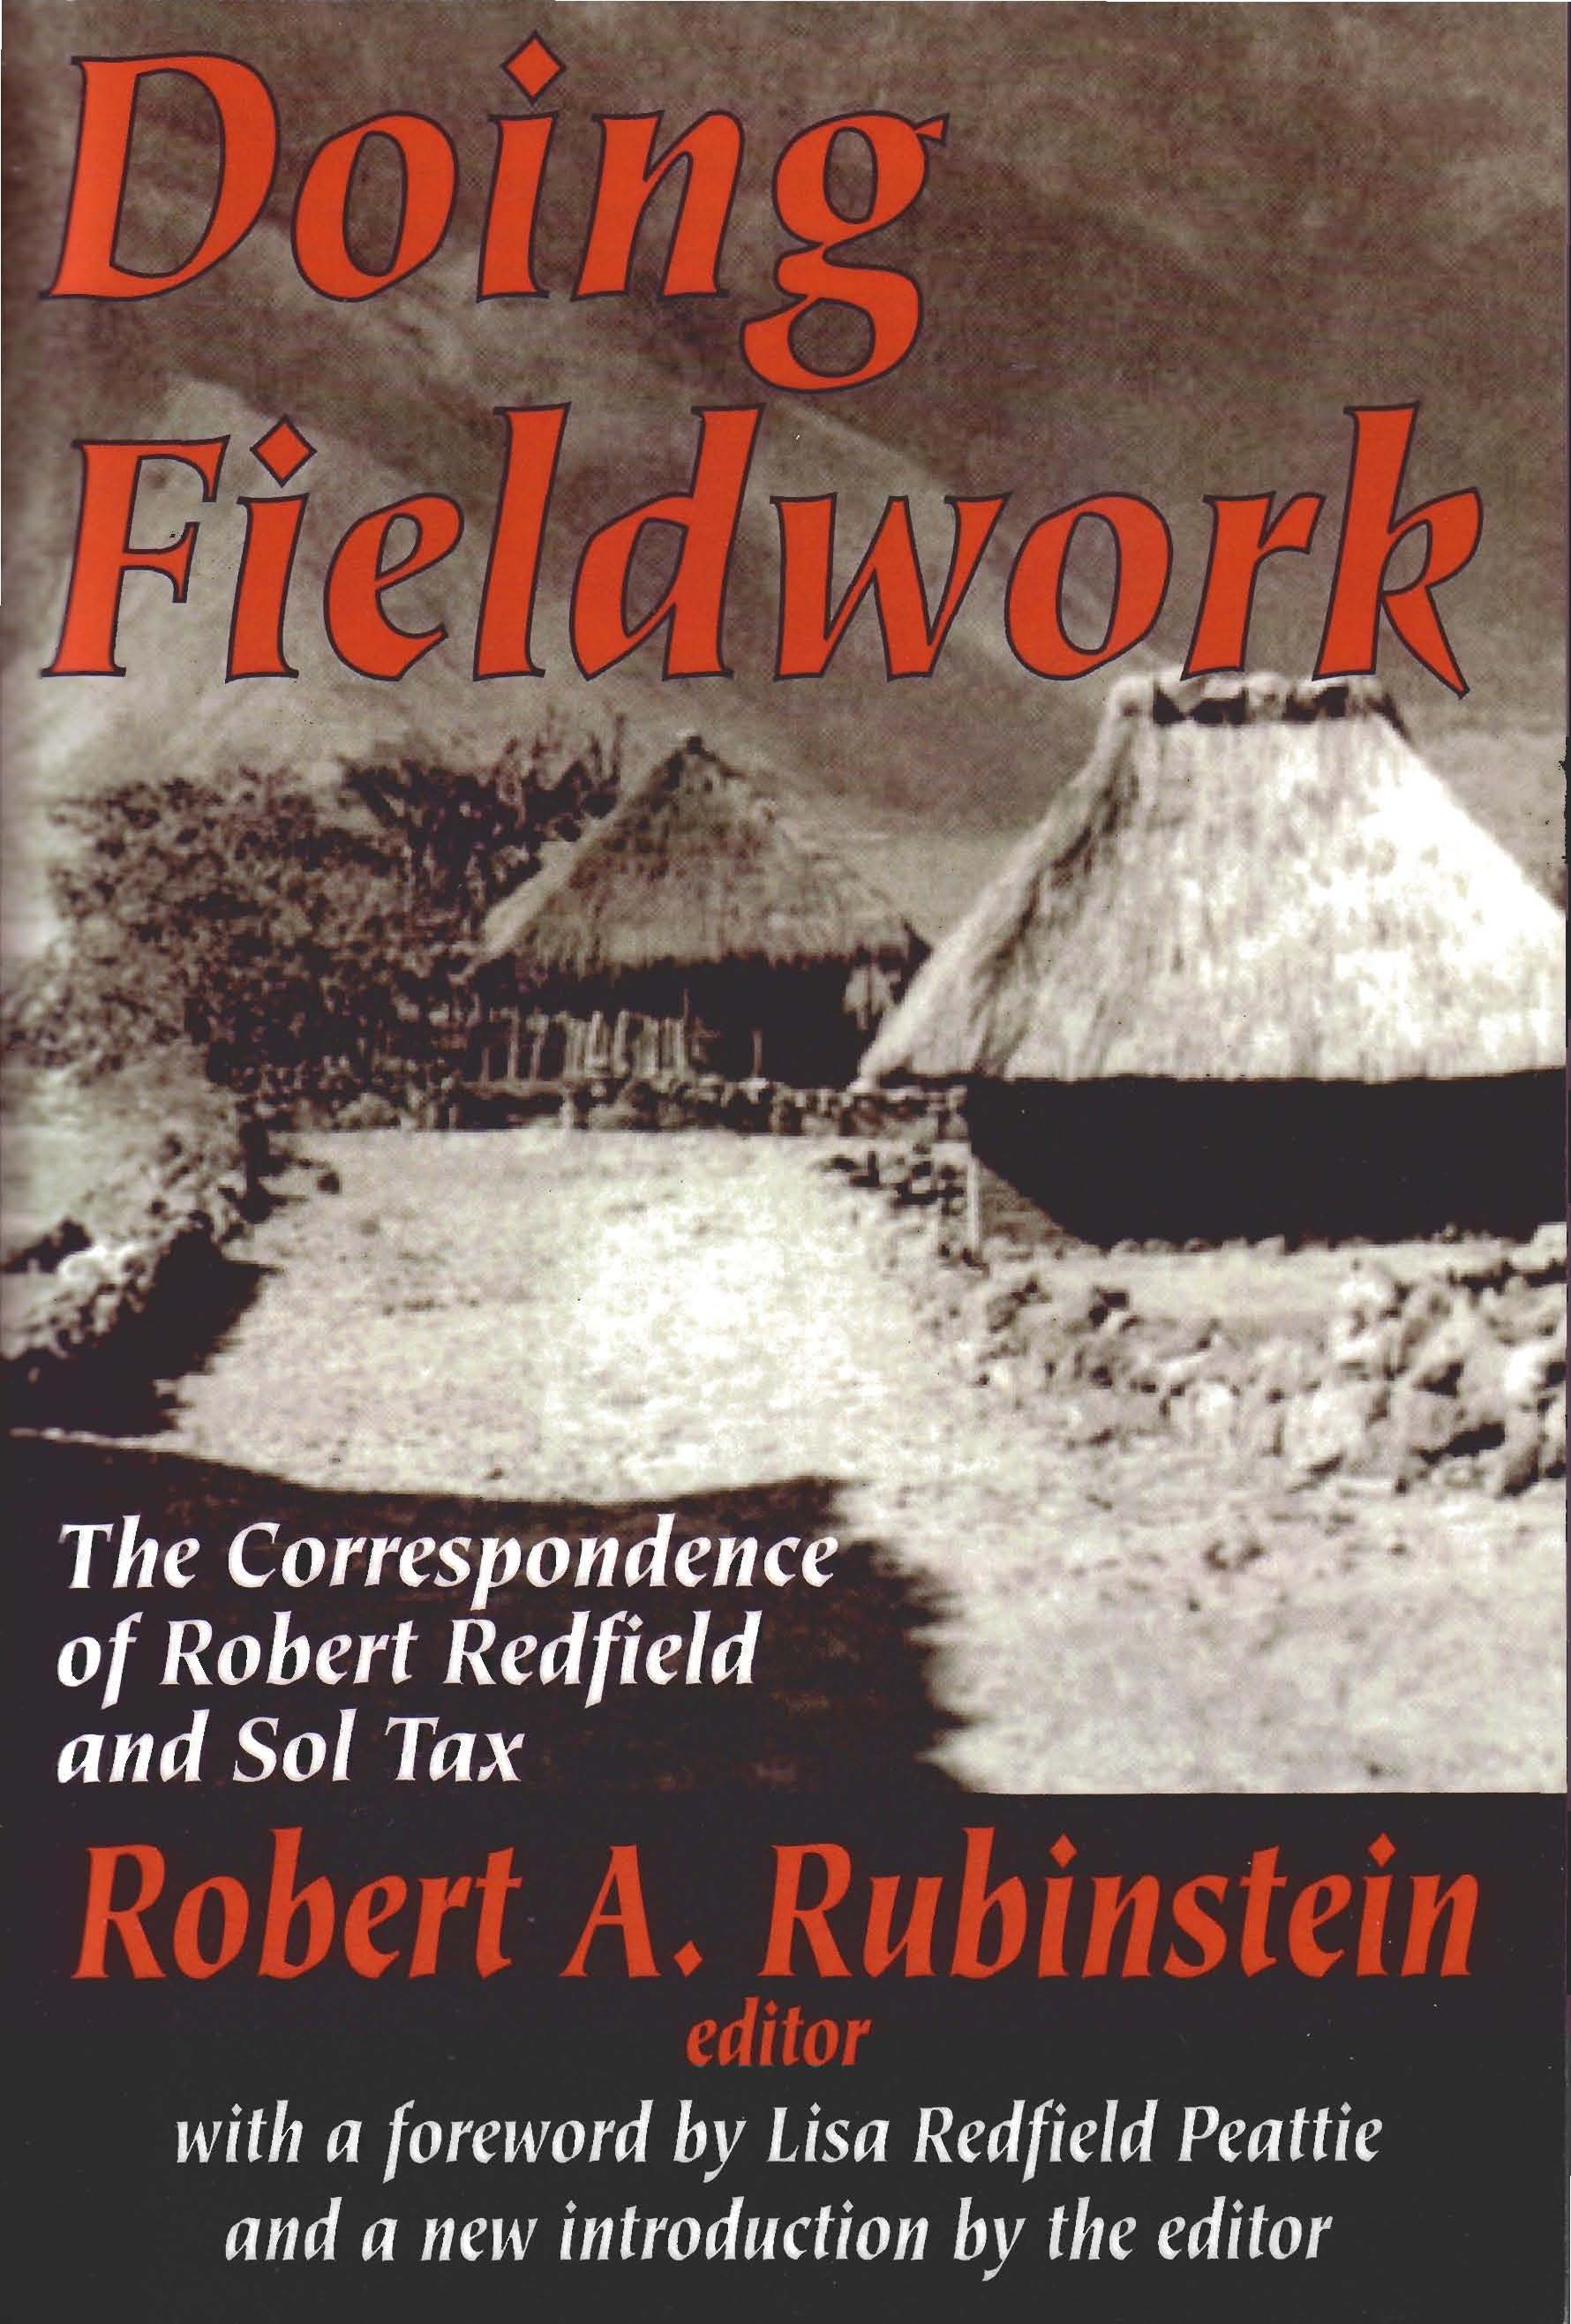 http://www.transactionpub.com/title/Doing-Fieldwork-978-0-7658-0735-9.html